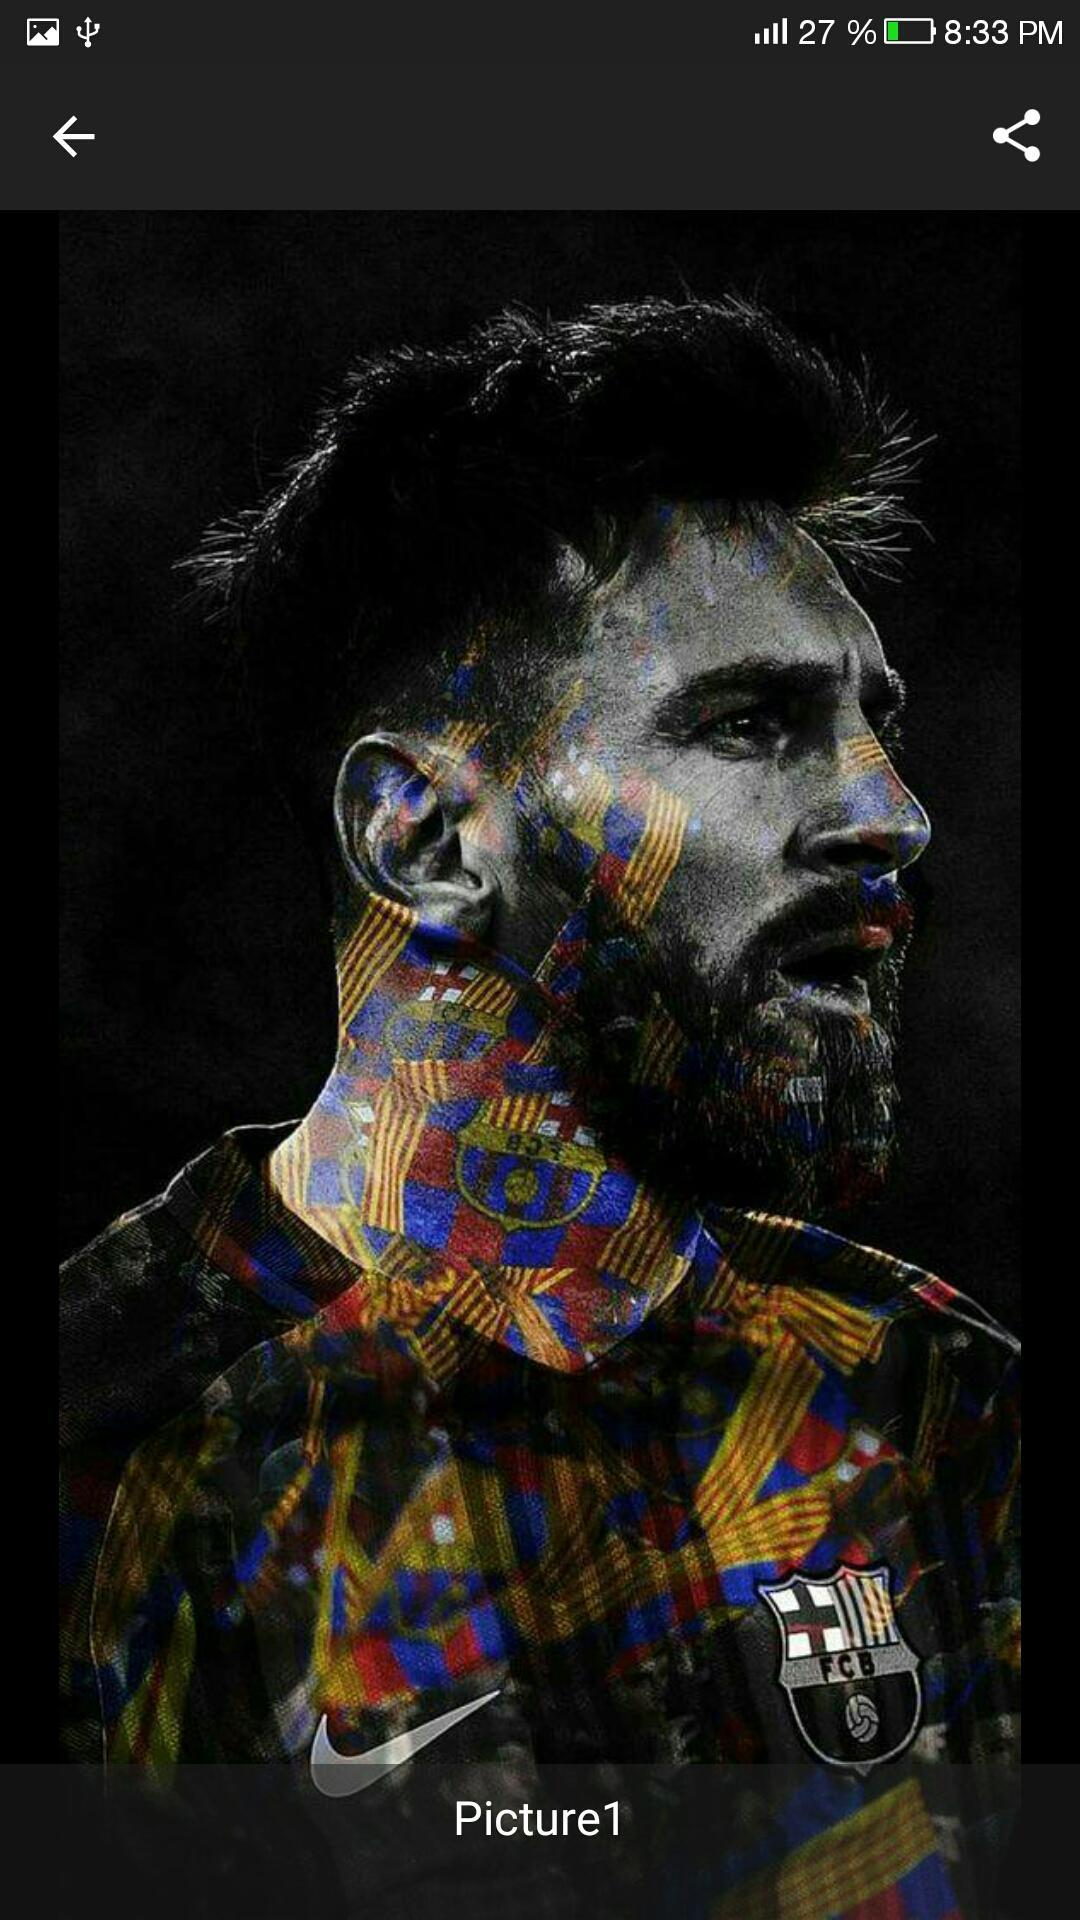 Barcelona Fc Wallpaper 2018 For Android APK Download